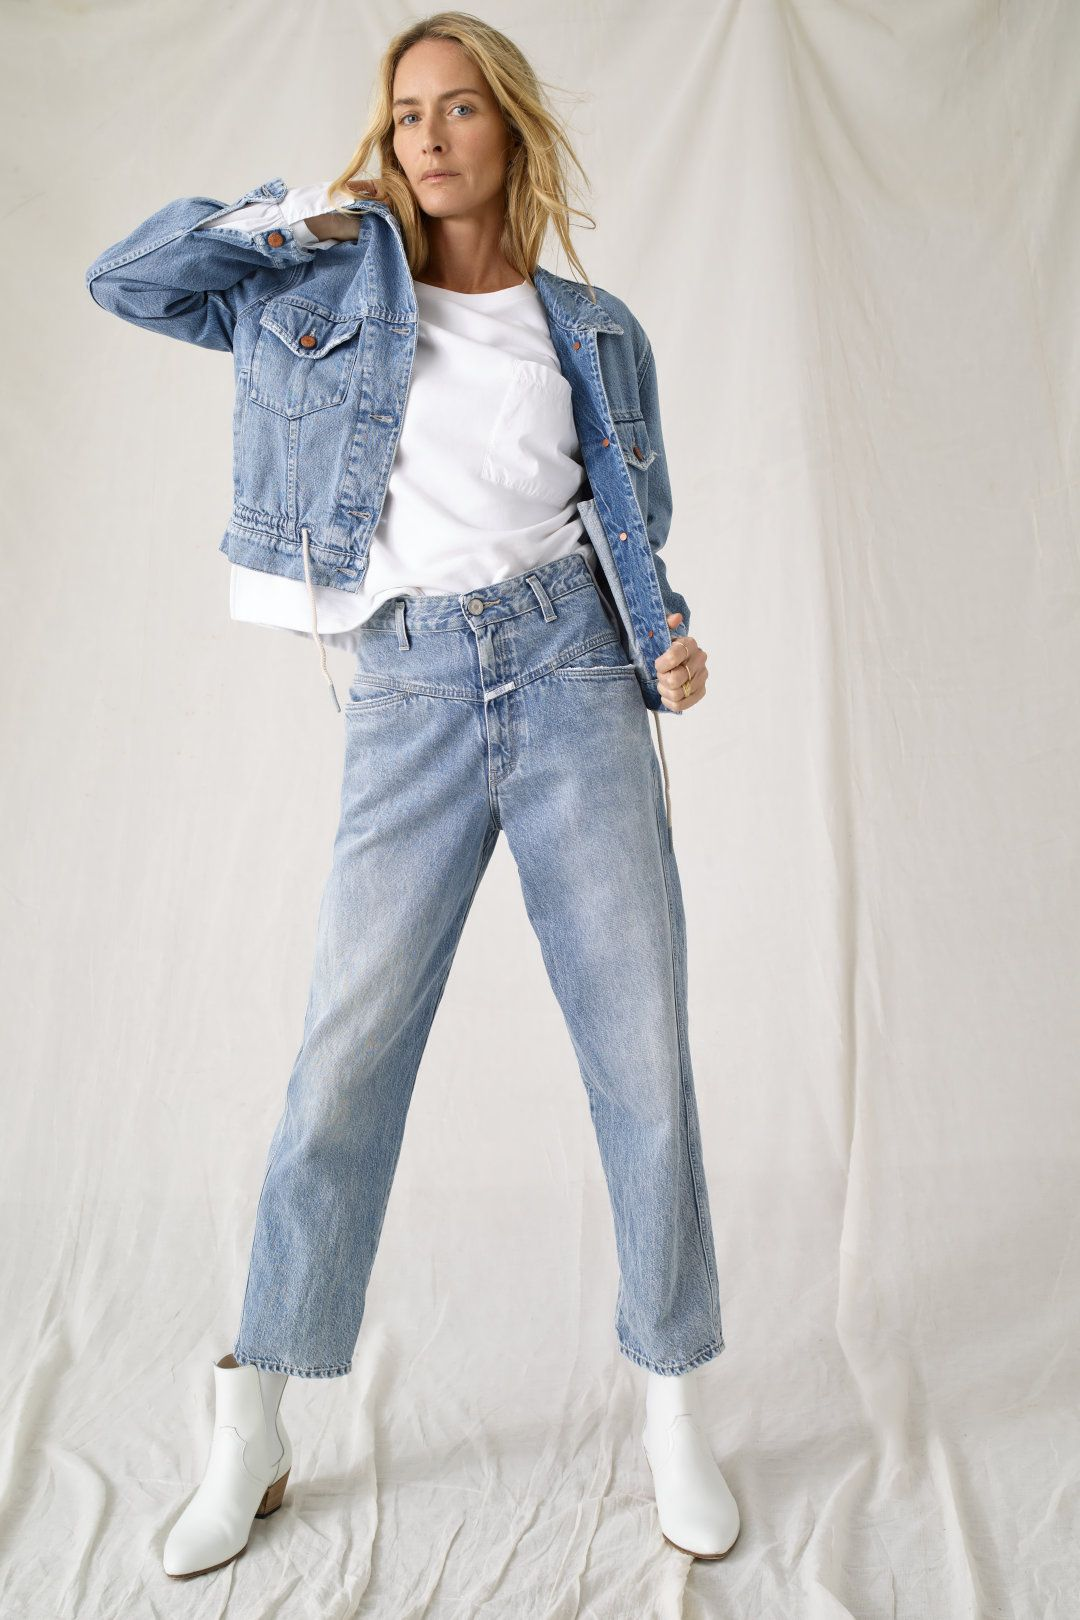 The Original X Pocket Closed Cropped Jeans Outfit Denim Outfit Denim Women